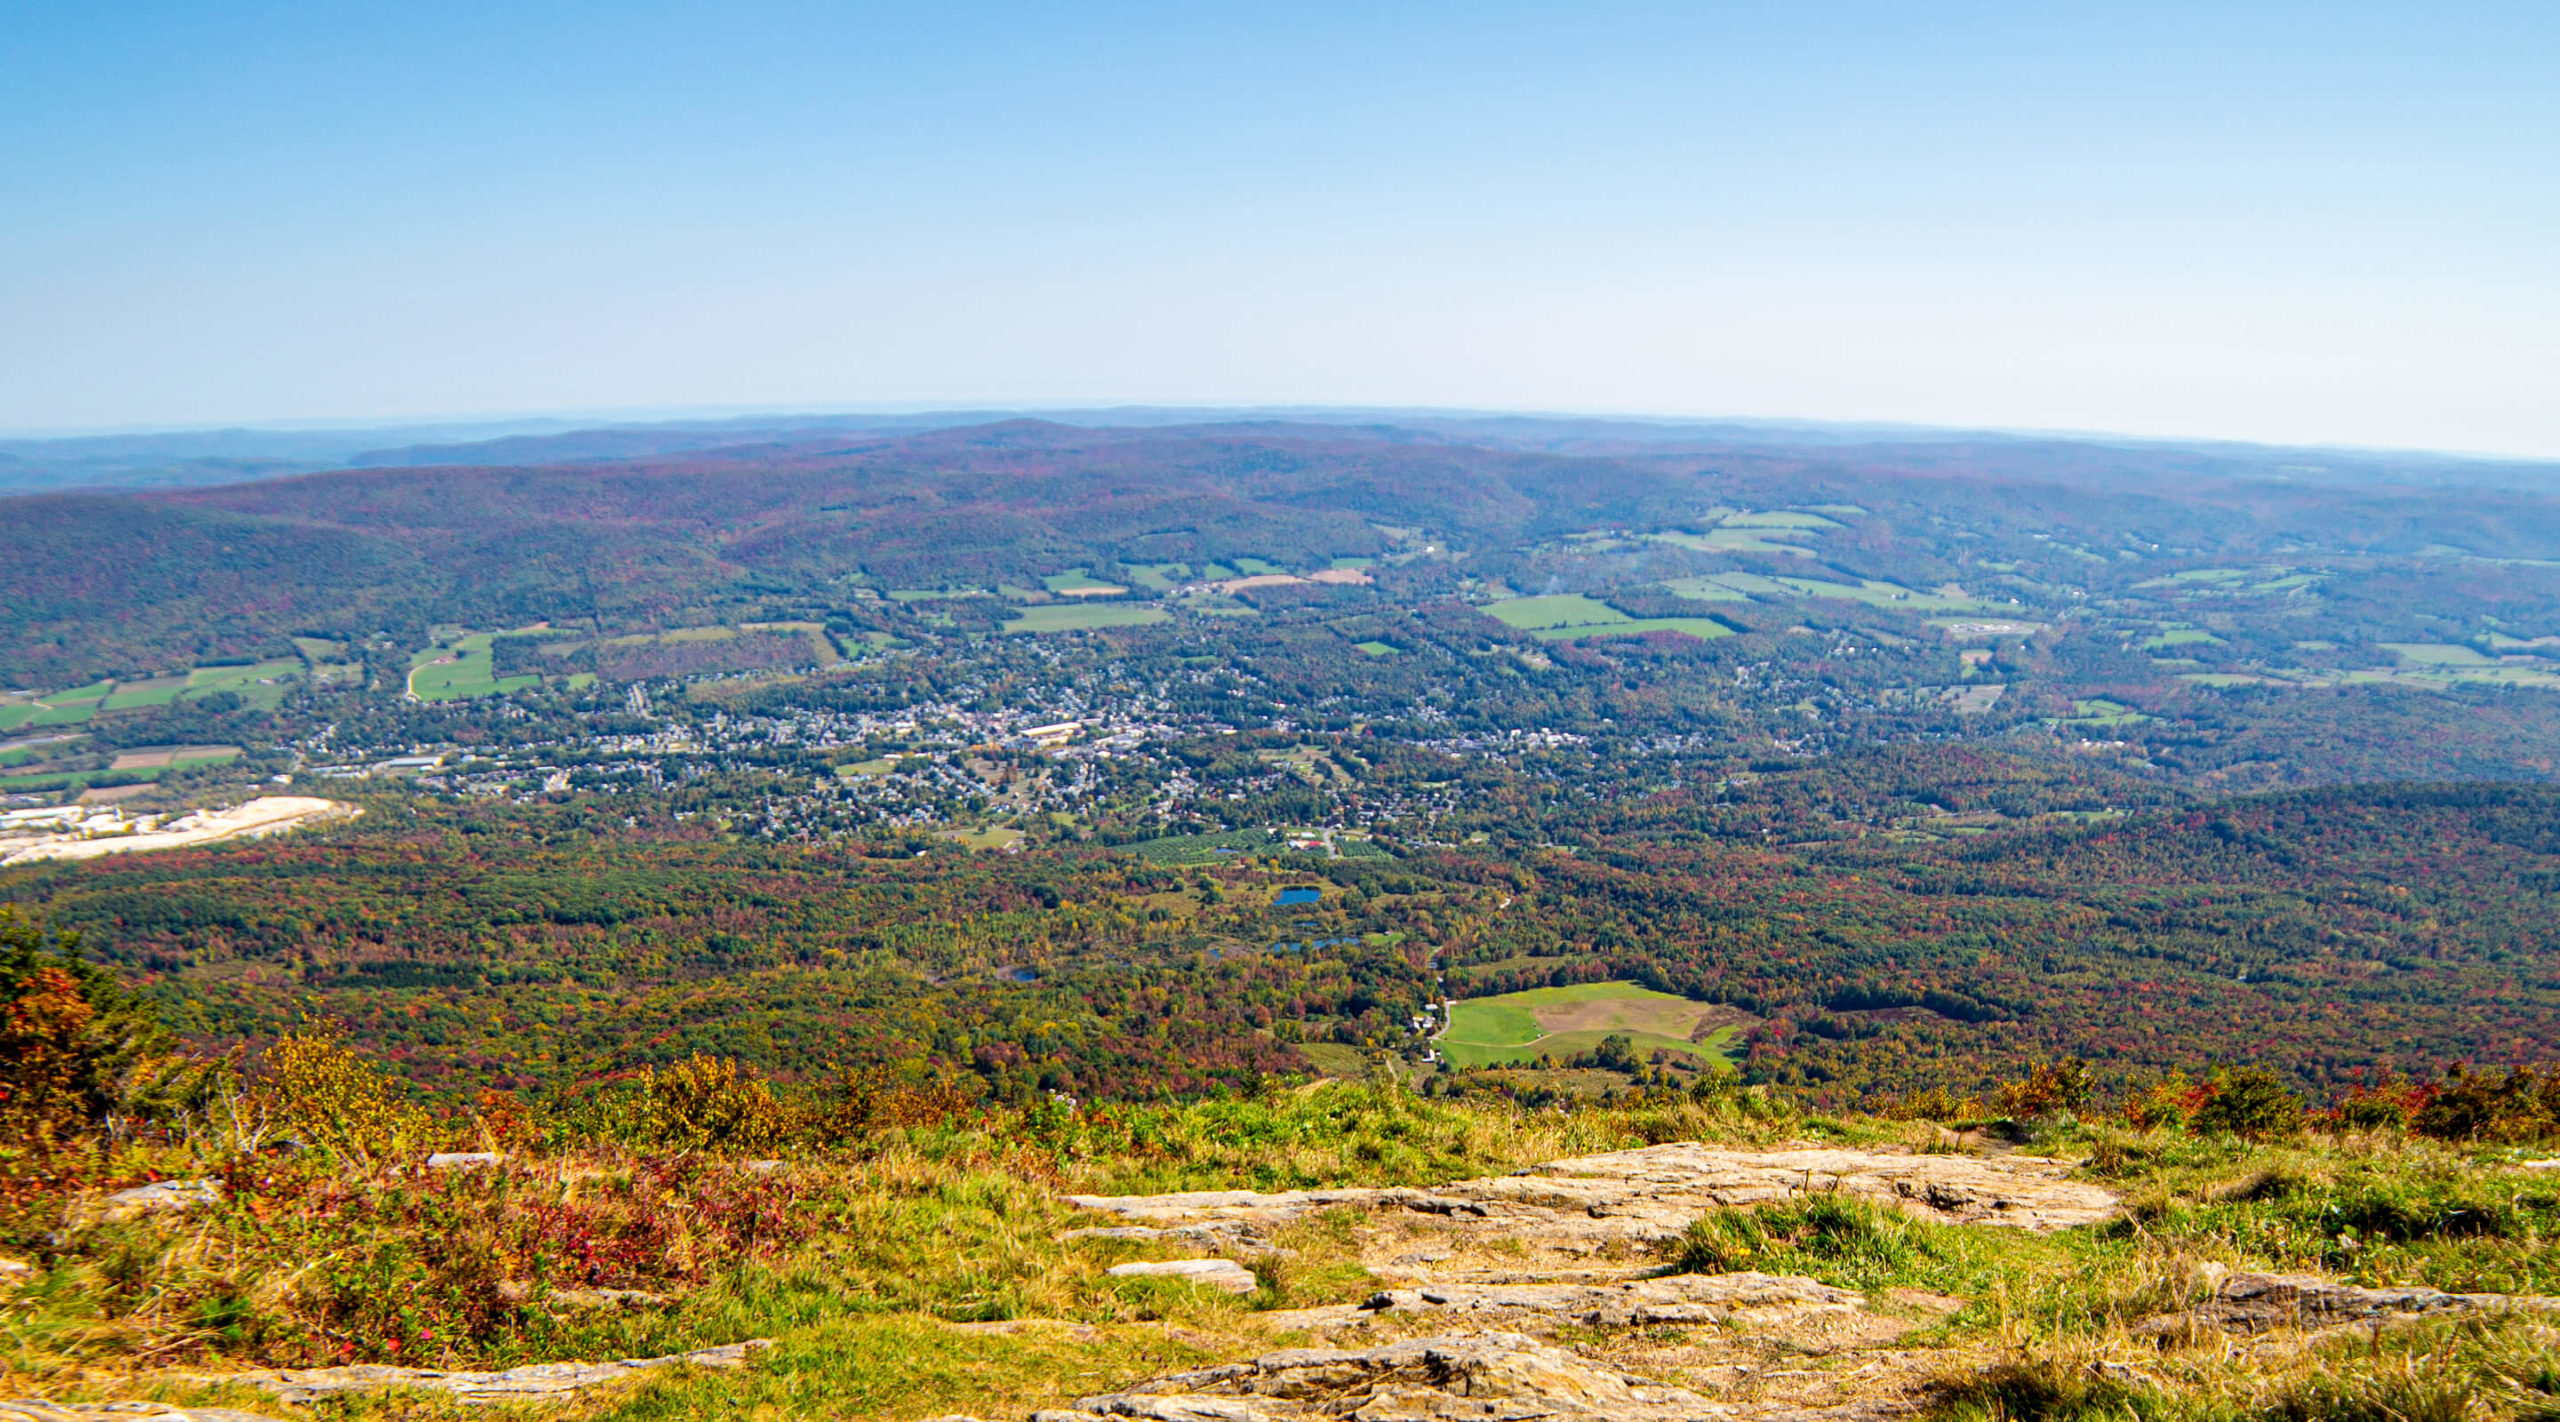 Views of Lenox and the distant horizon from atop Mount Greylock